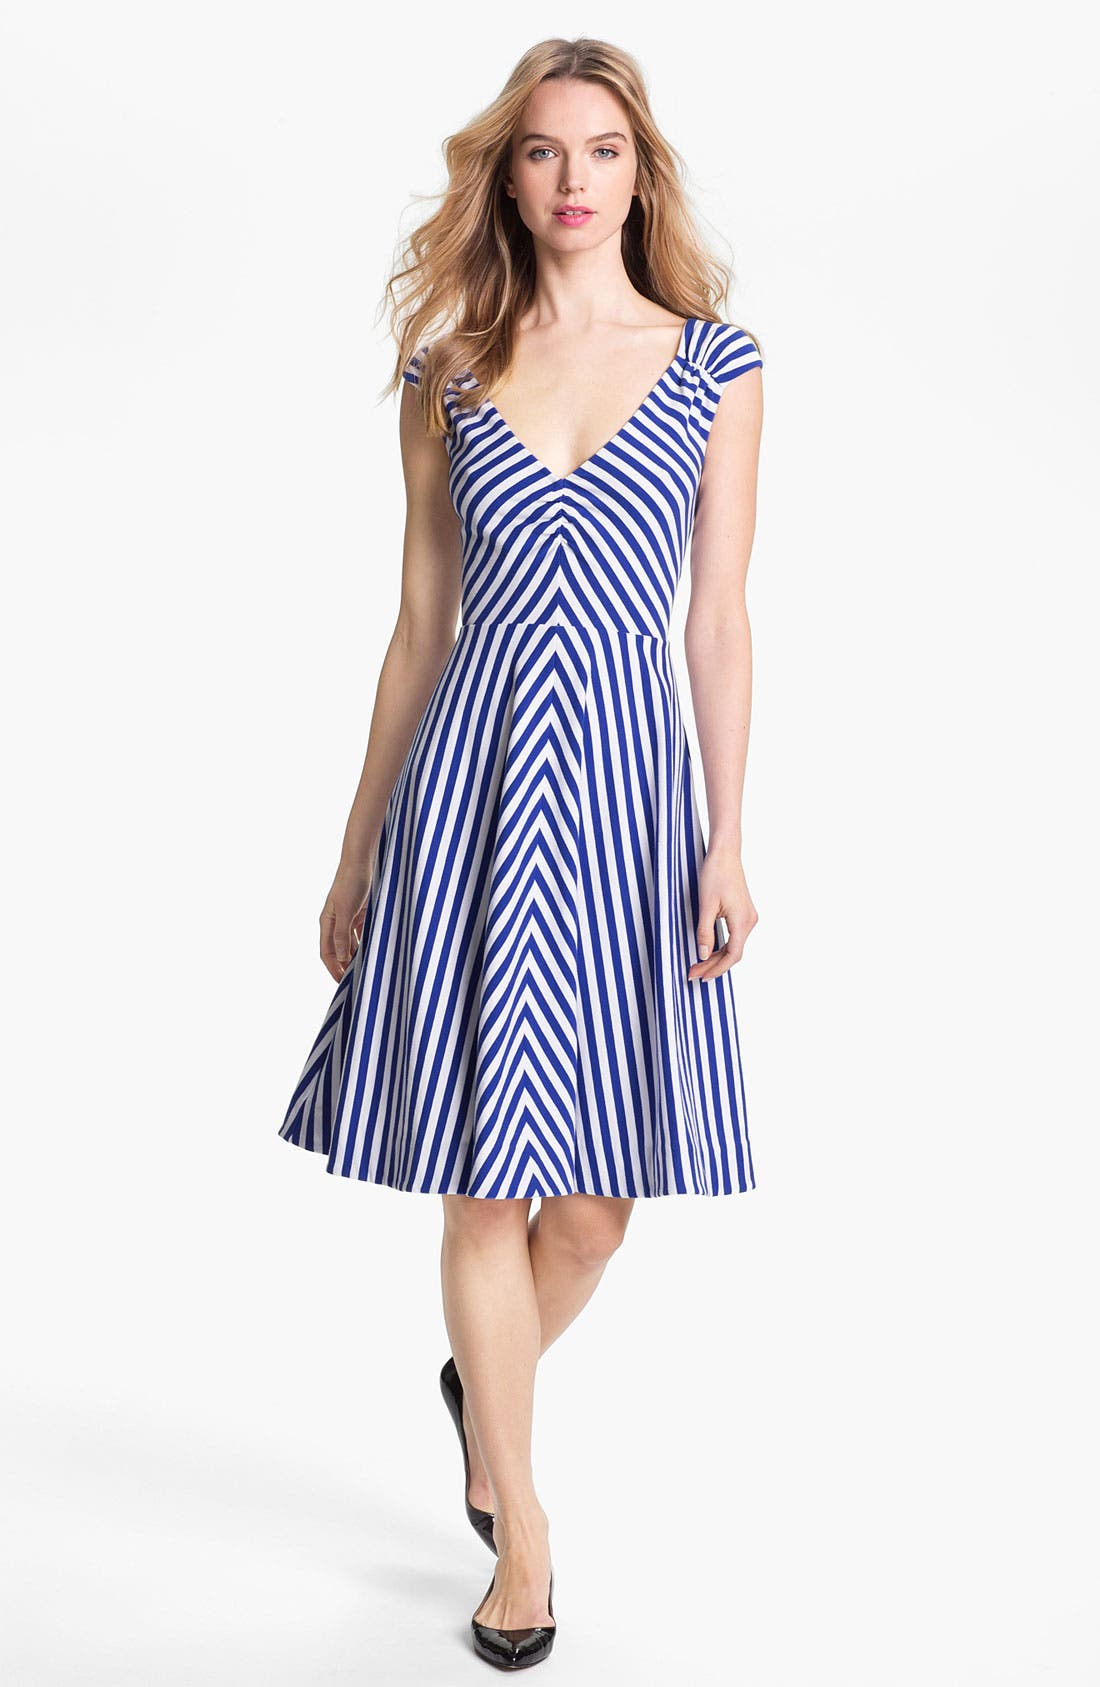 Alternate Image 1 Selected - kate spade new york 'ethel' stretch cotton a-line dress